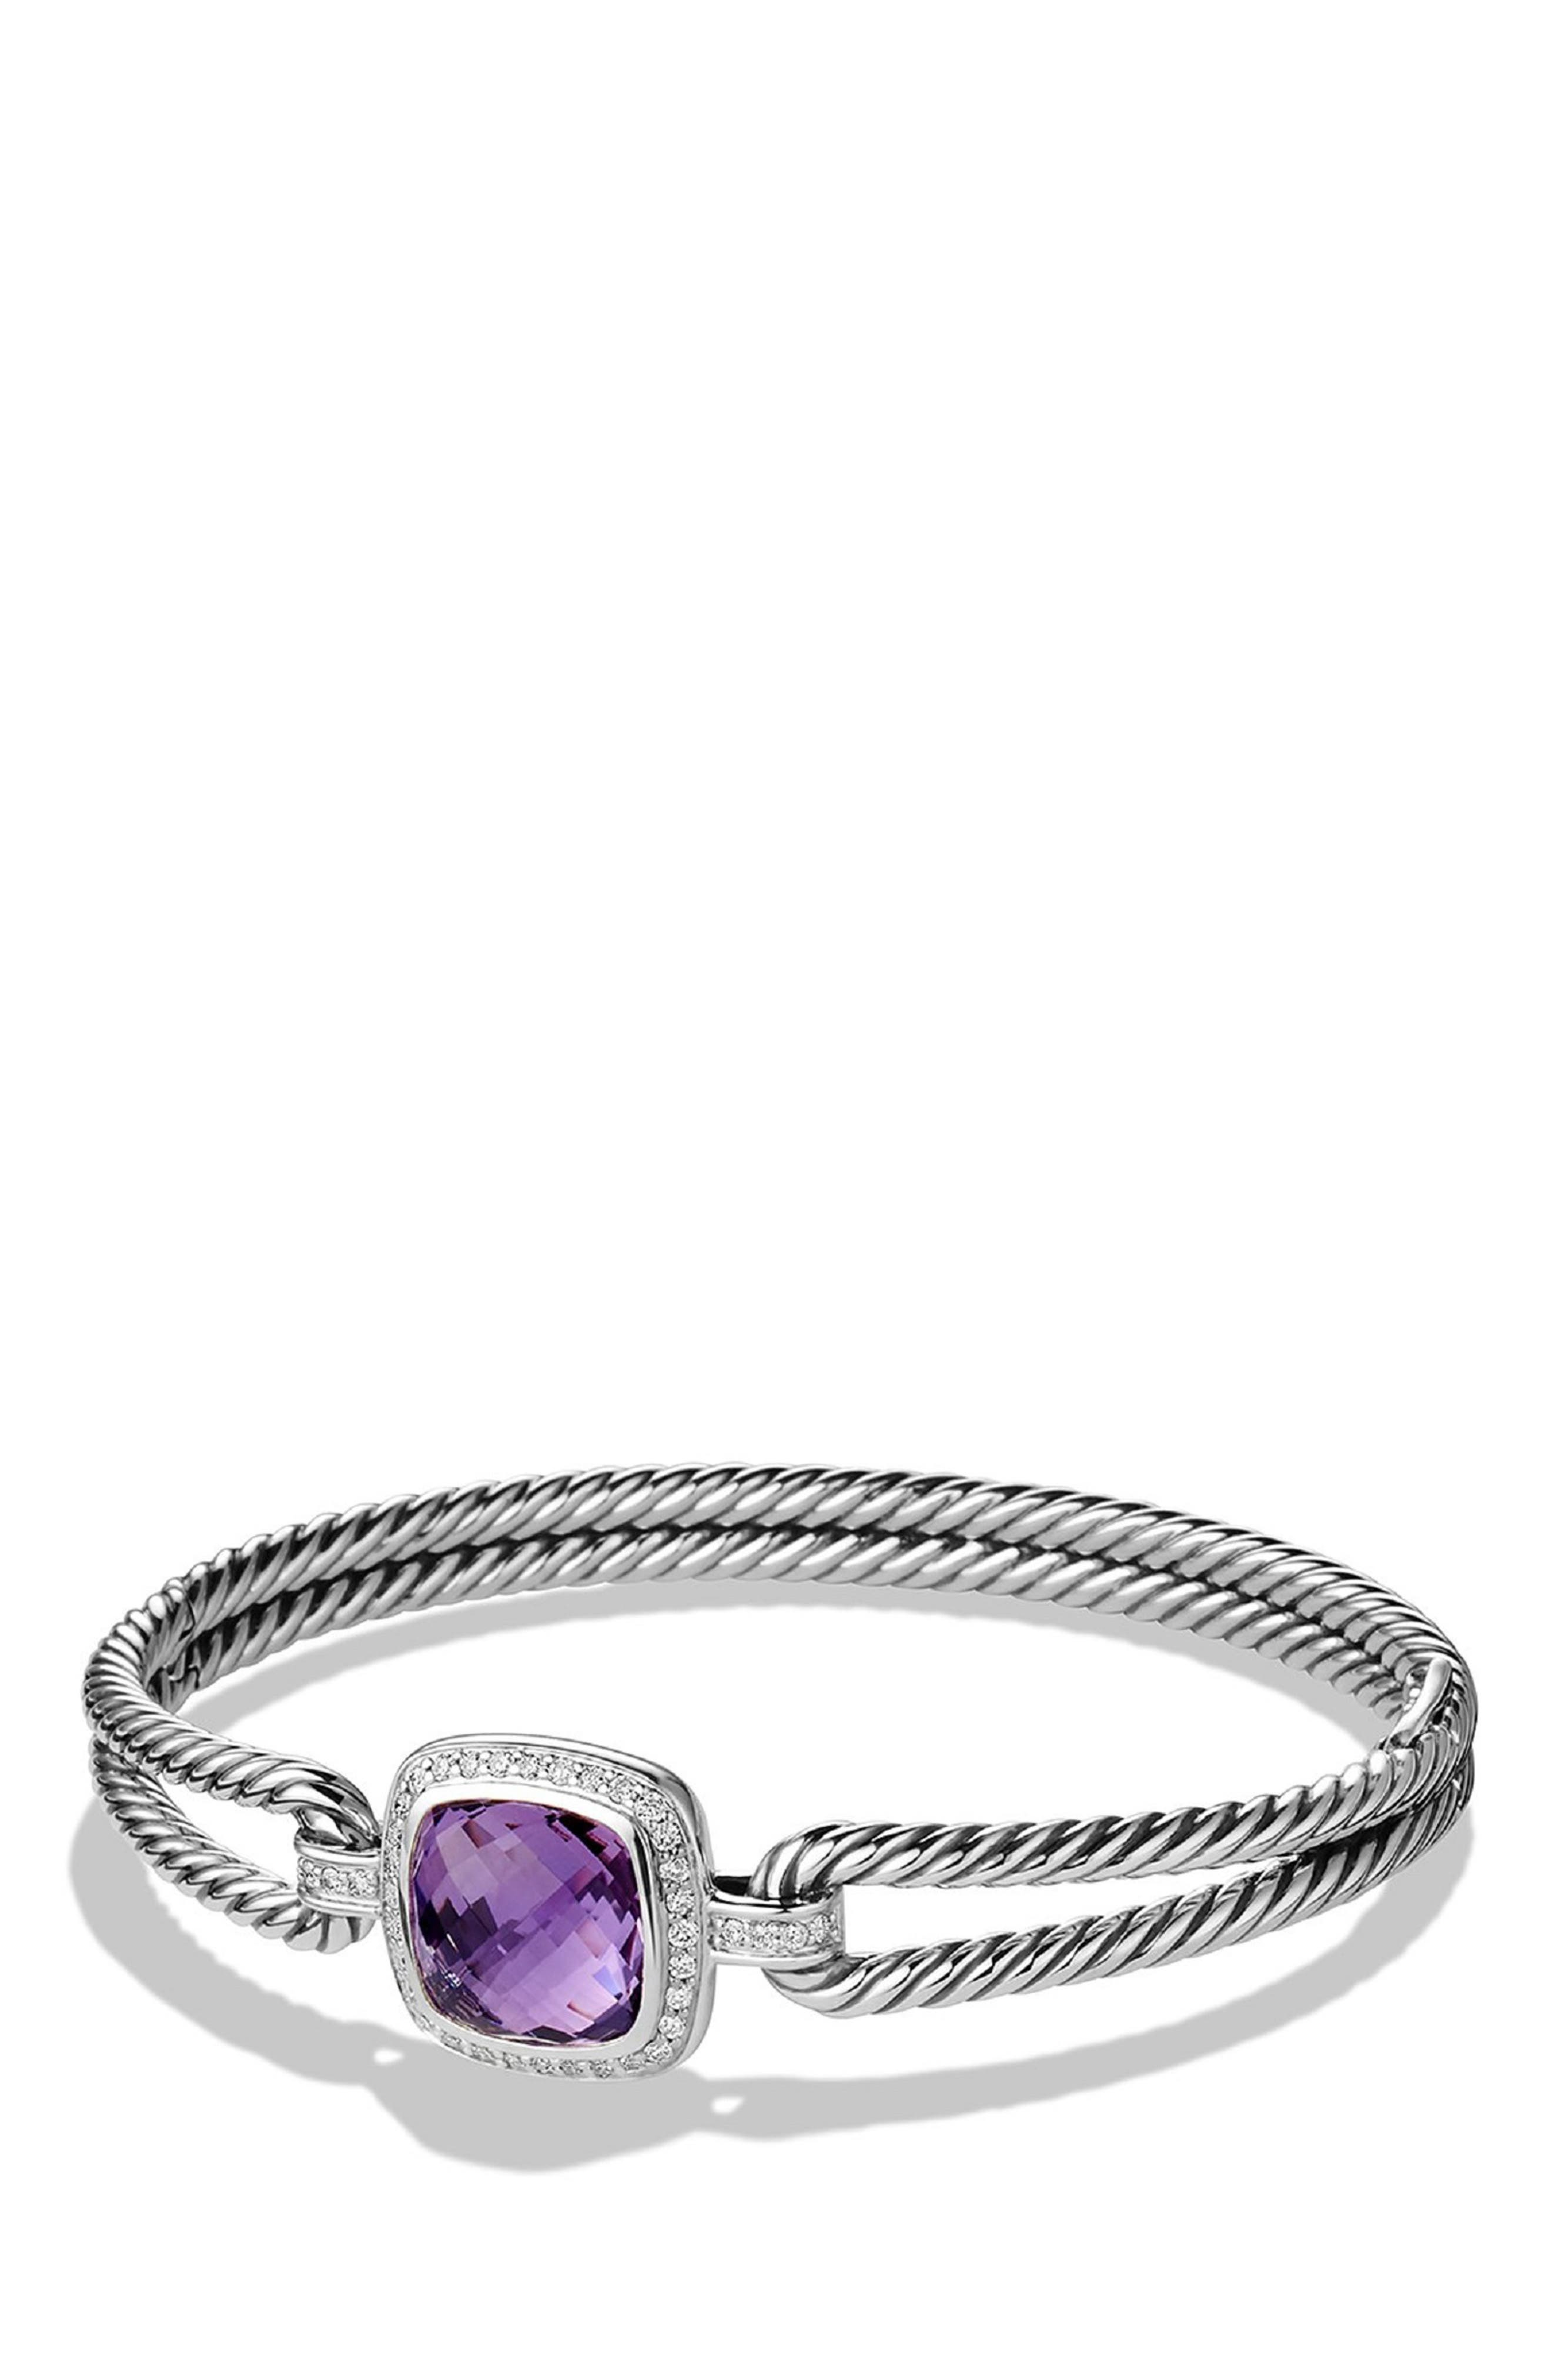 'Albion' Bracelet with Semiprecious Stone and Diamonds,                             Main thumbnail 1, color,                             AMETHYST